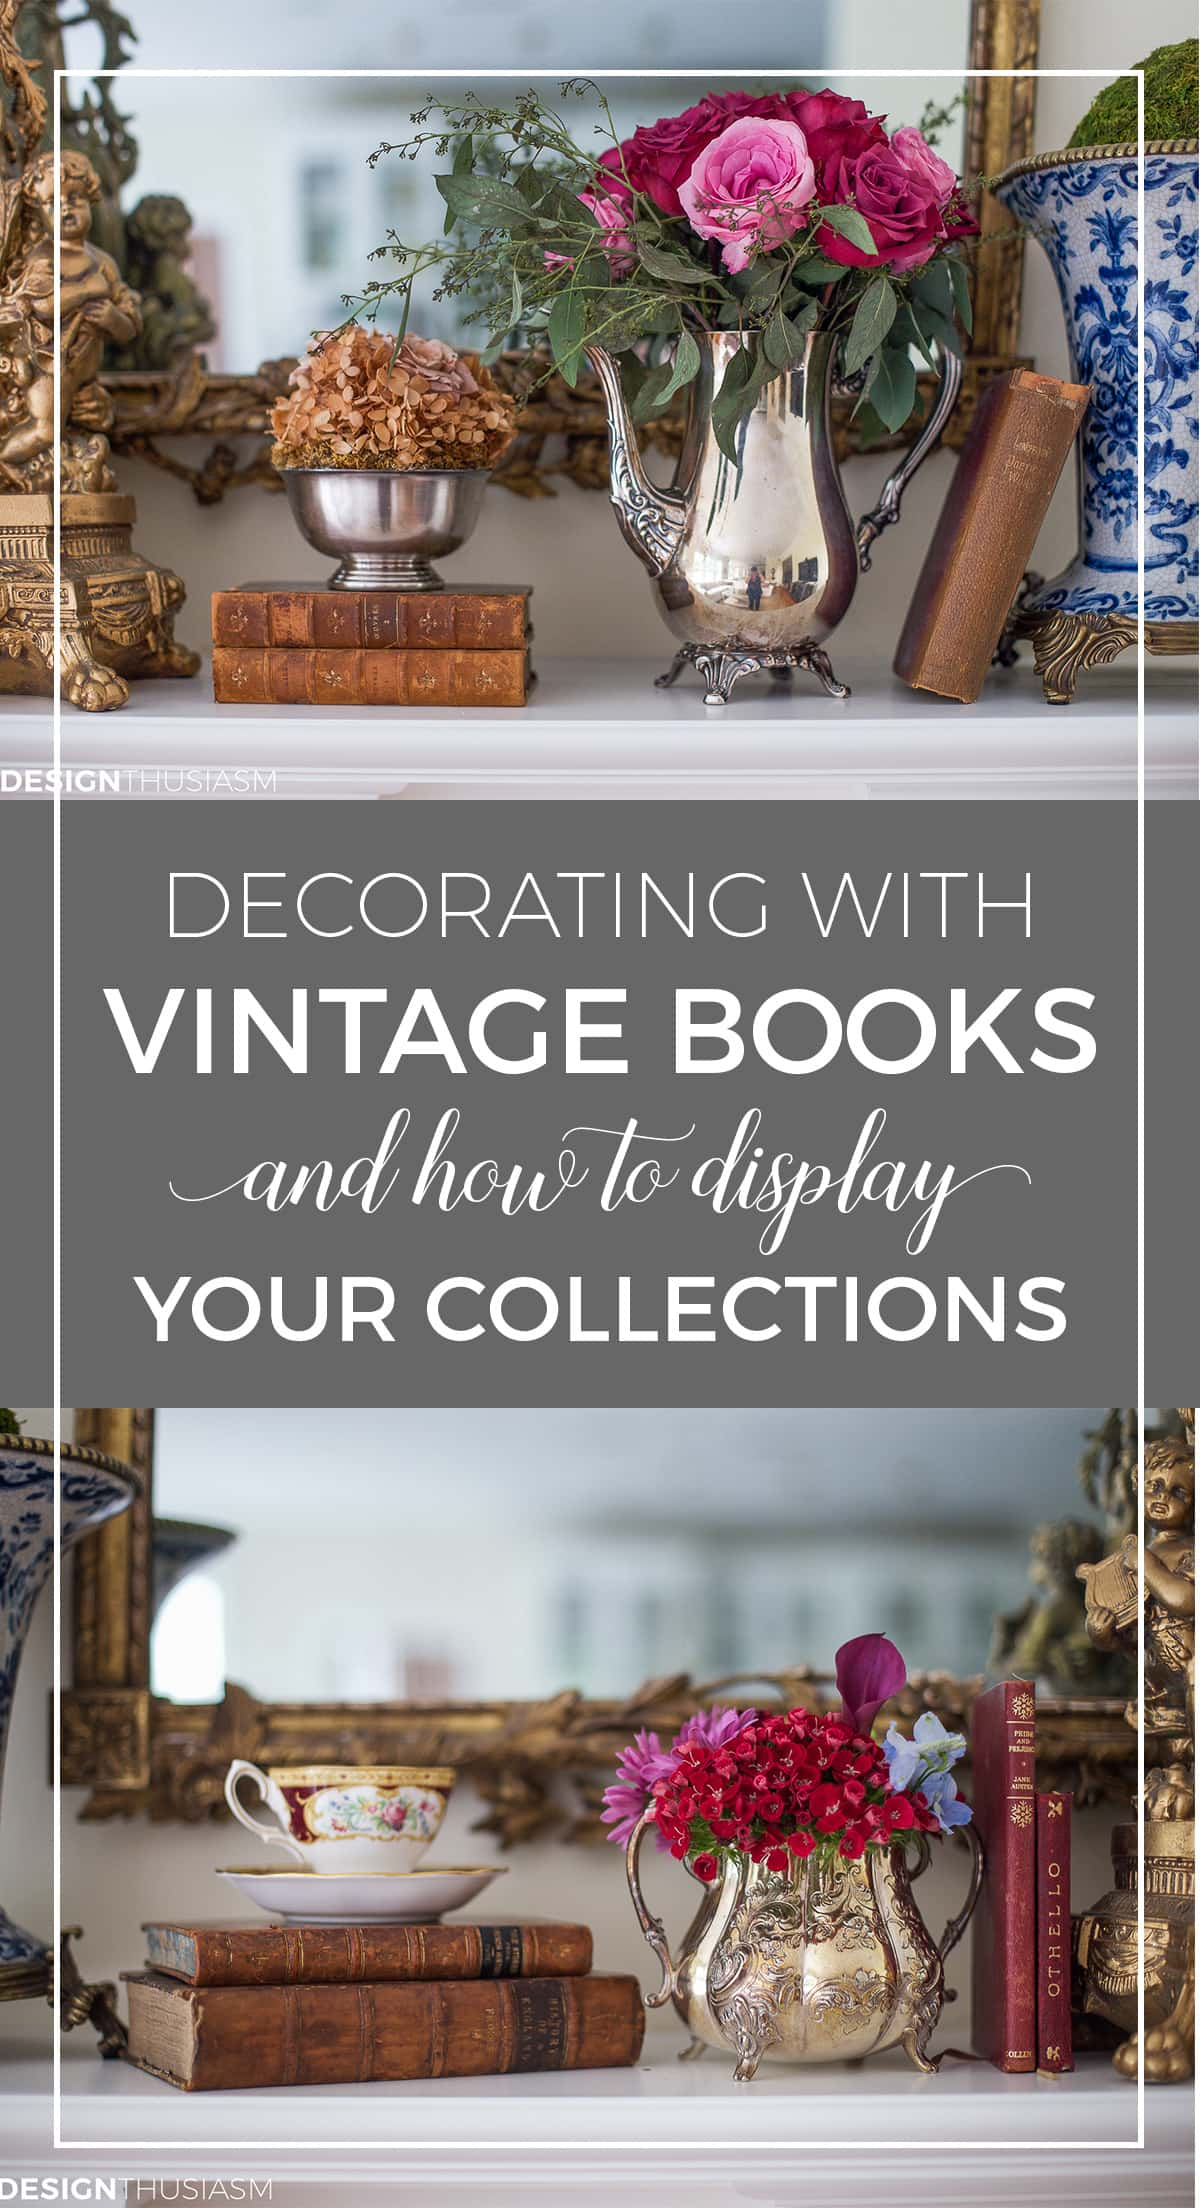 Decorating with vintage books in the home